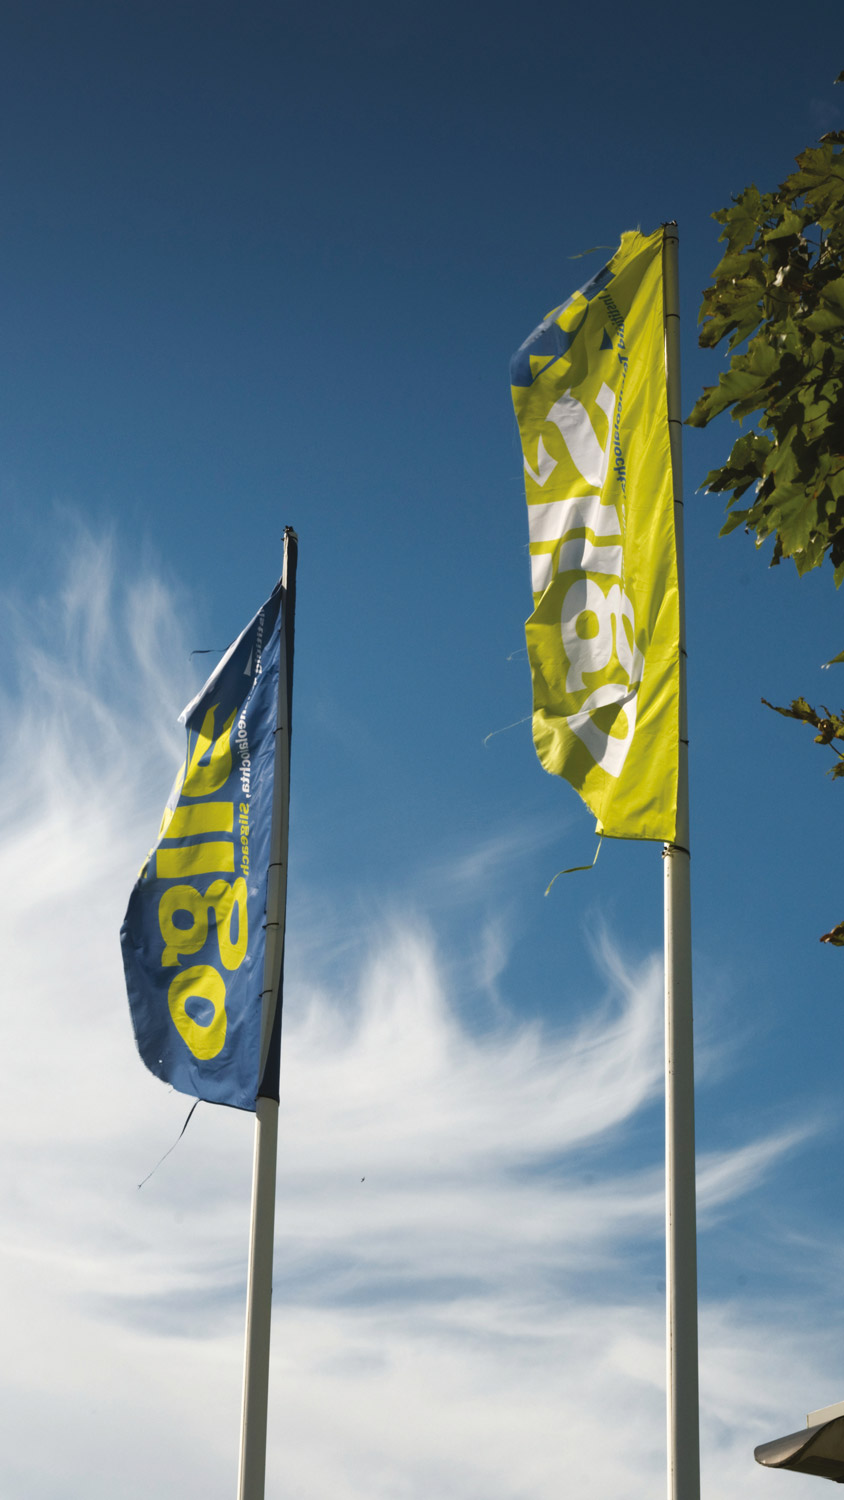 IT Sligo Flags